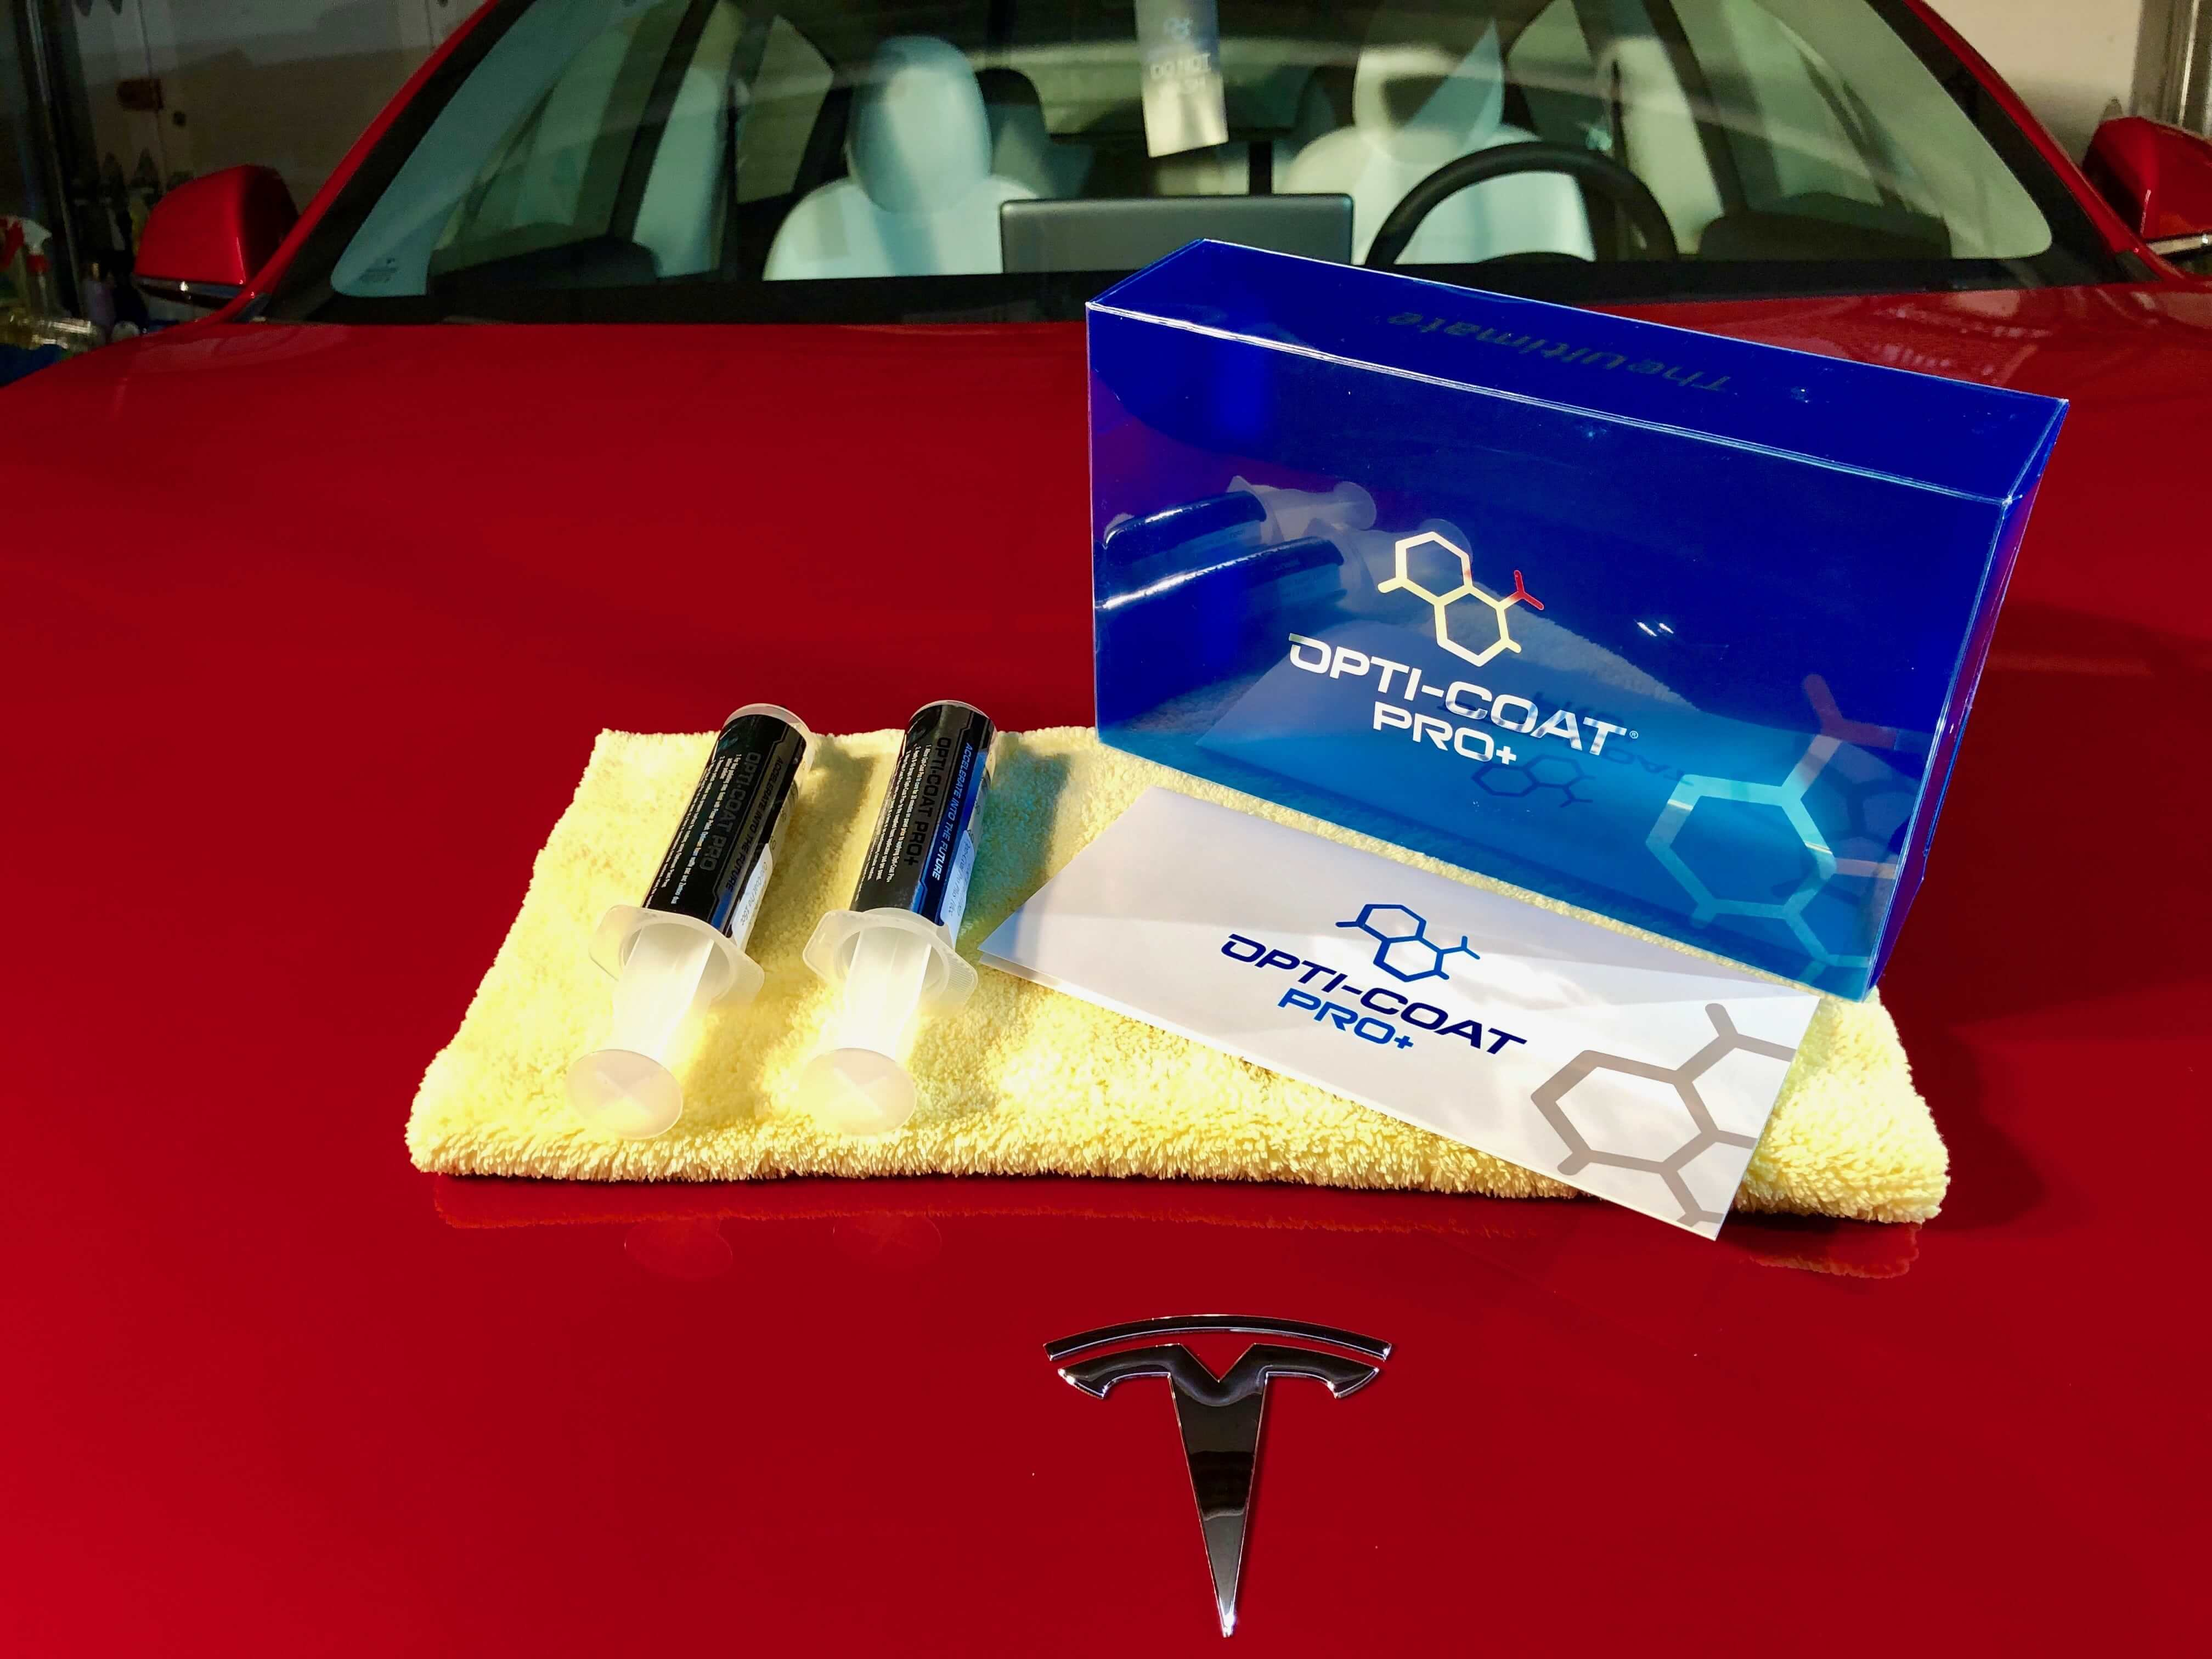 Opti Coat Pro + Ceramic Coating with microfiber towels on red tesla